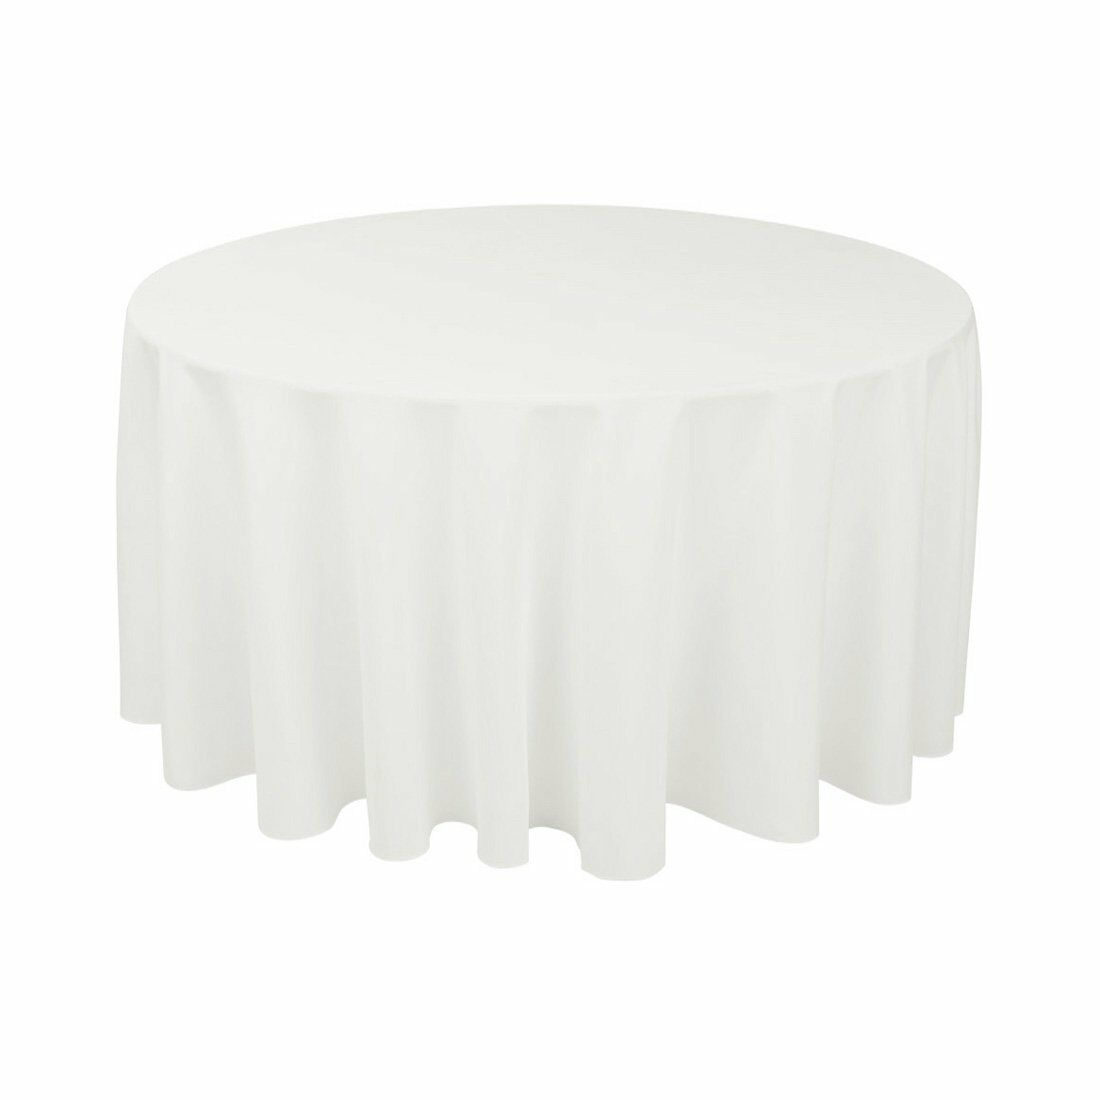 10 pcs 70  Weiß Round Polyester Tablecloth Bulk for Weddings Party